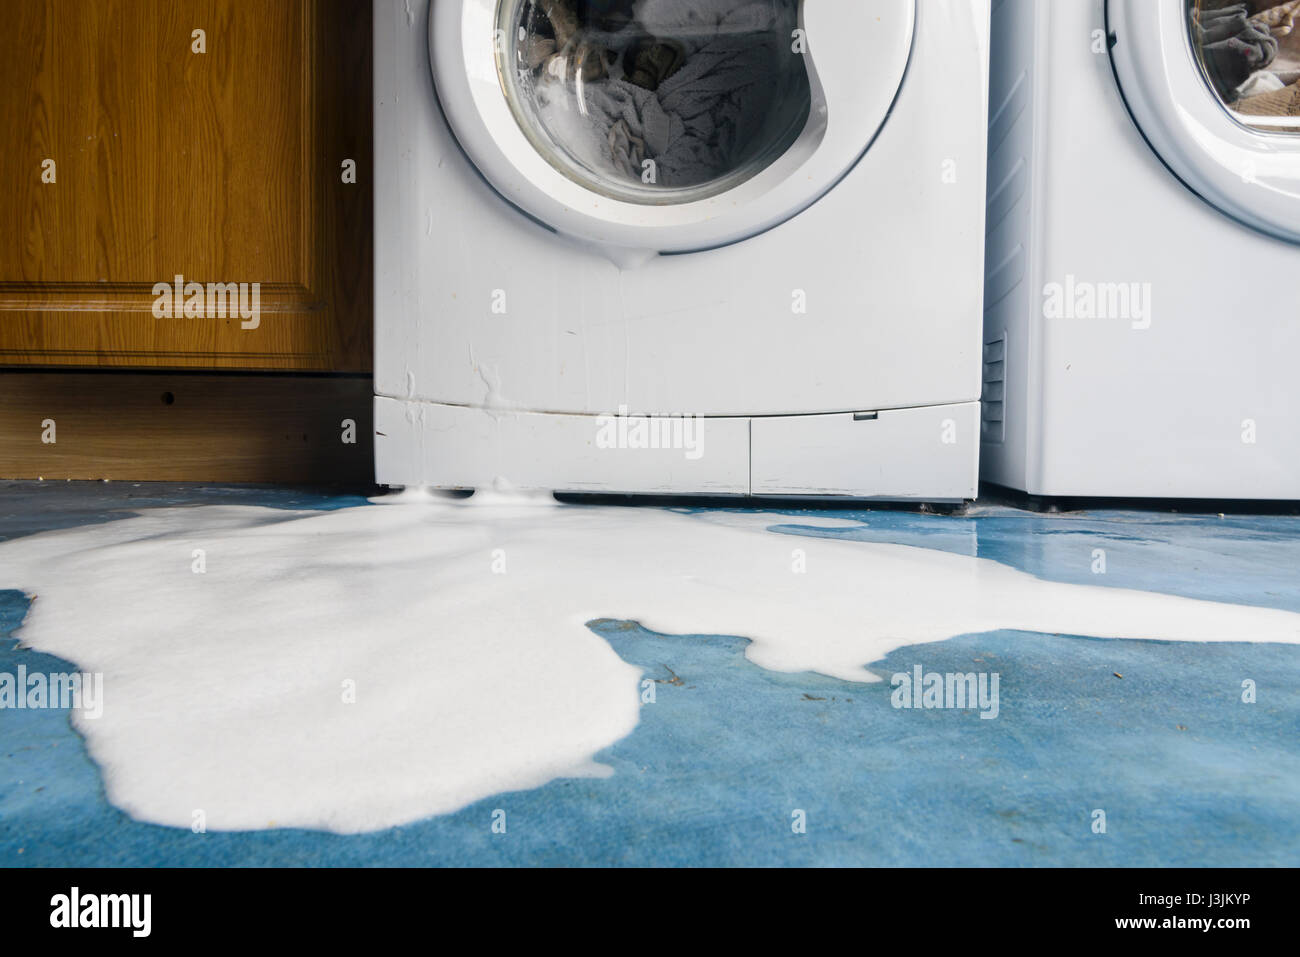 Washing Machine Leaking >> Soap Bubbles Pour Out Of A Leaking Washing Machine Stock Photo